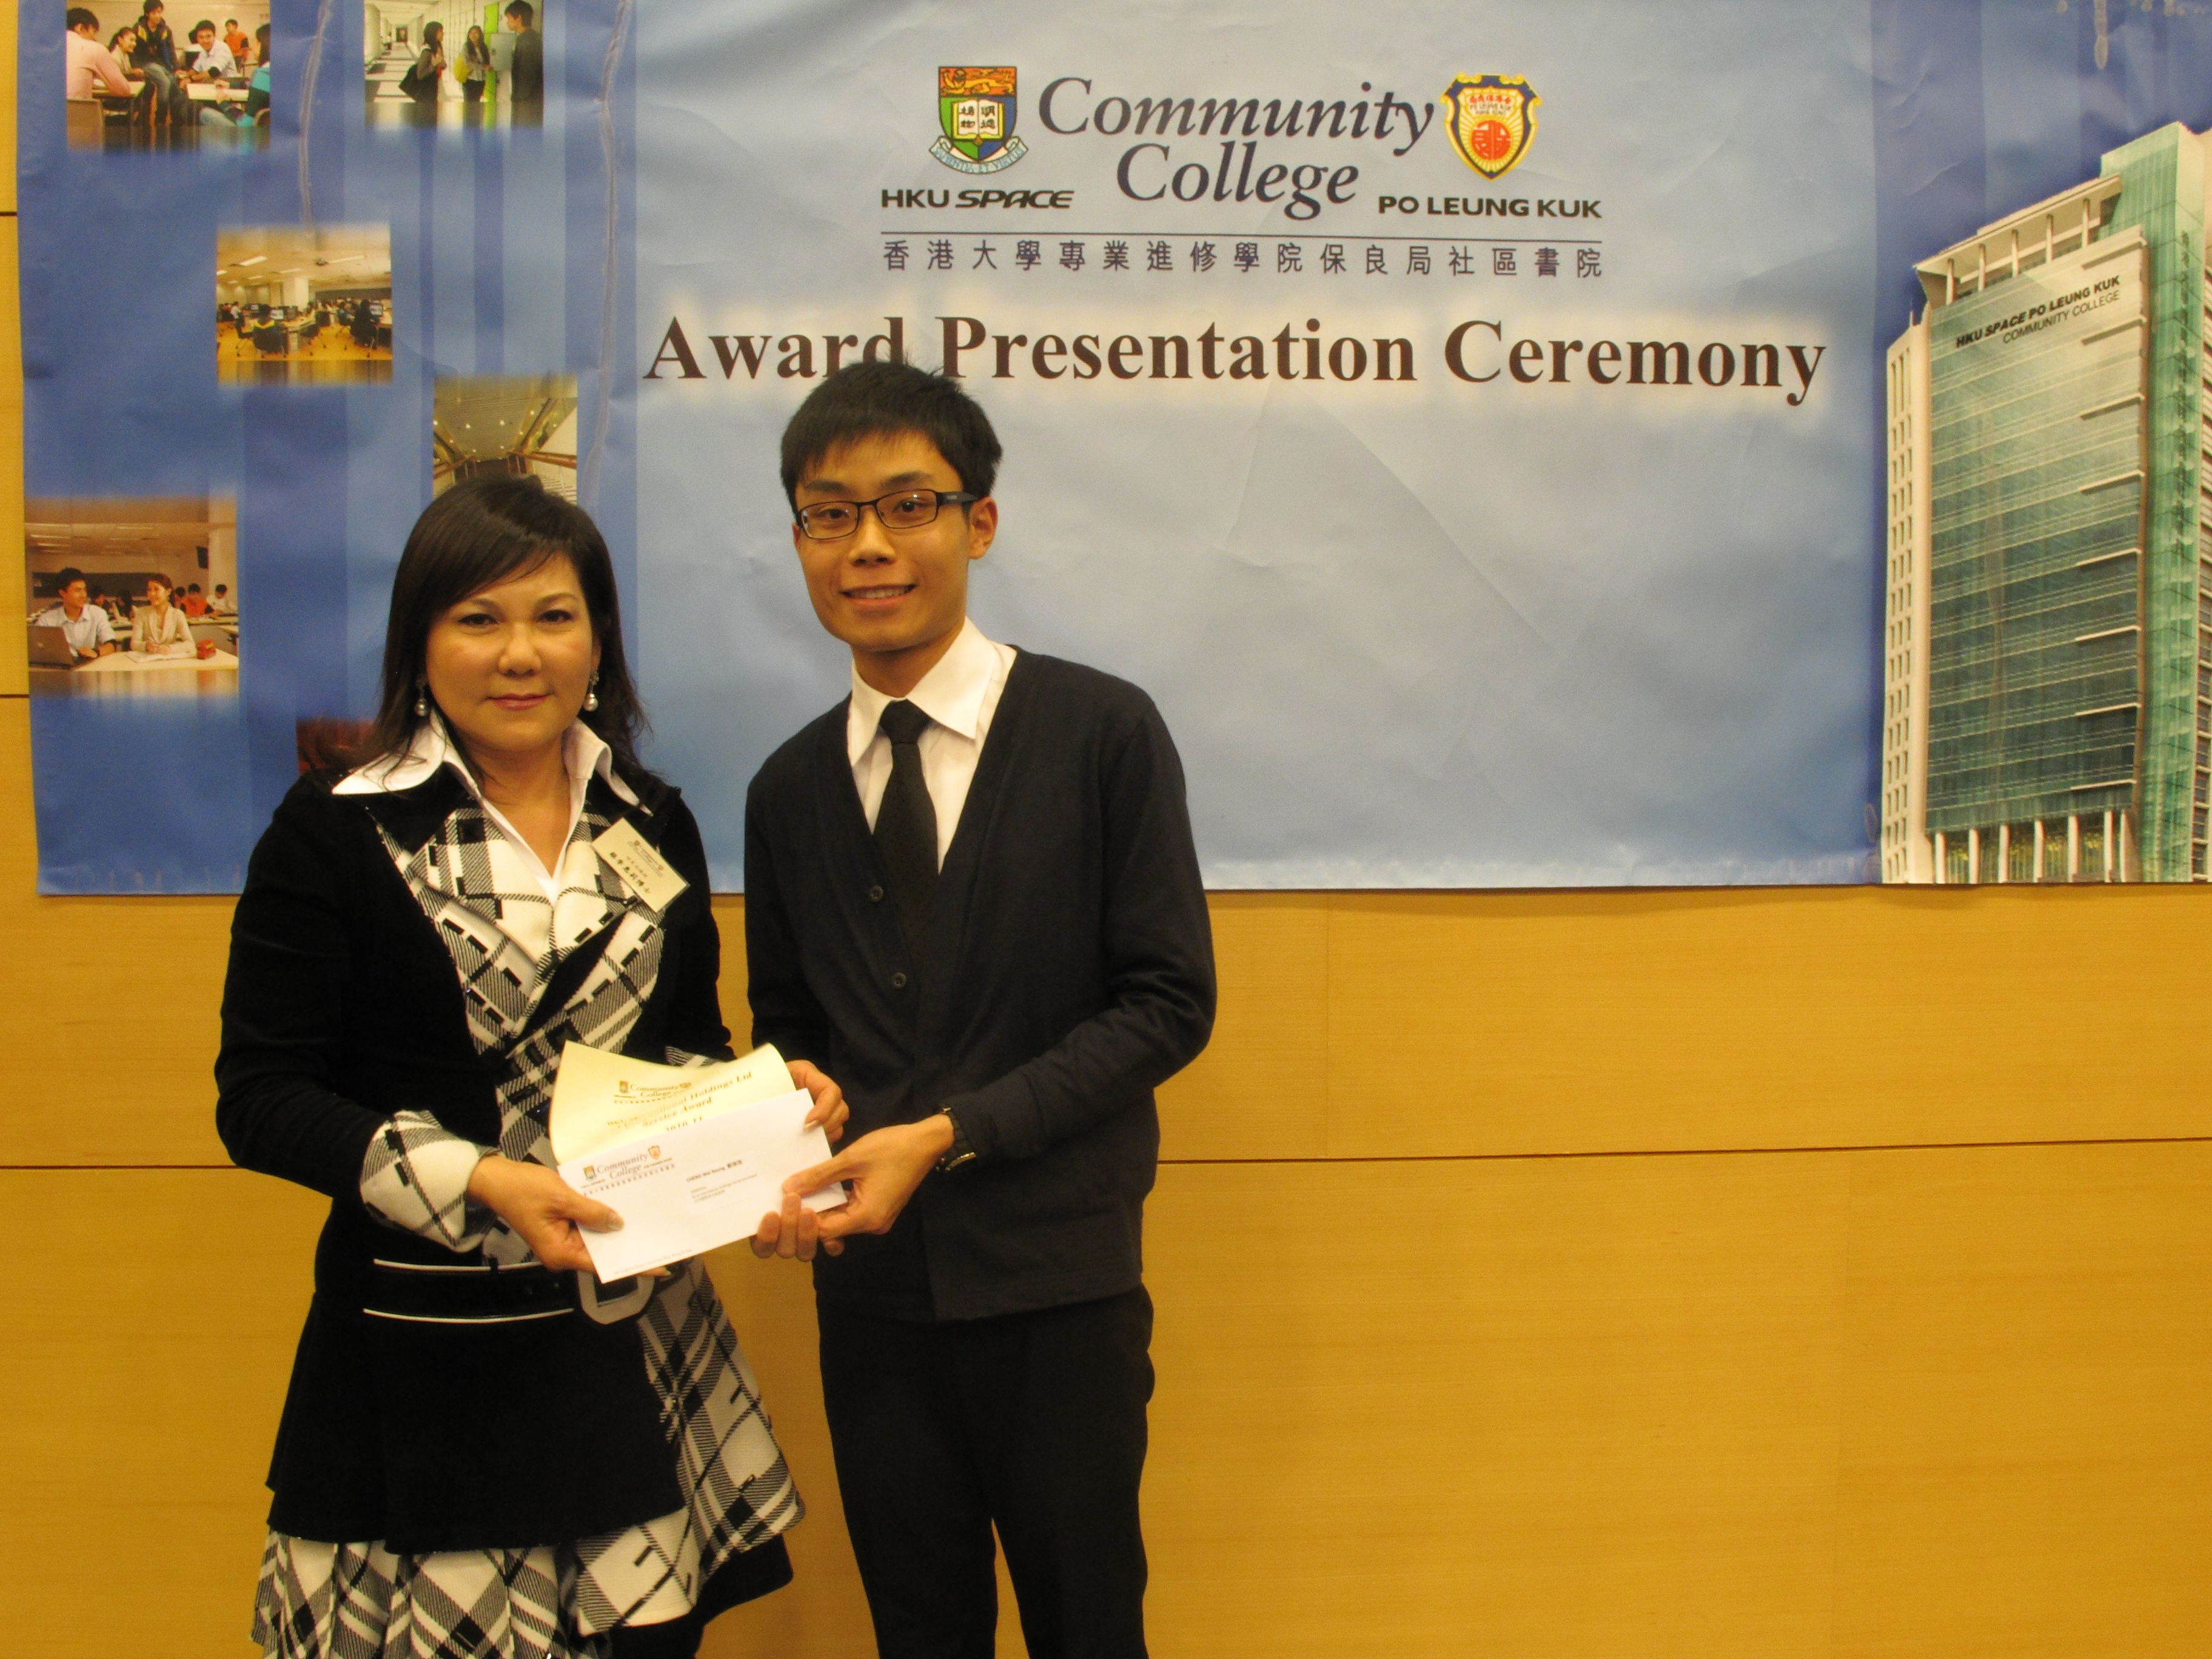 Award Presentation Ceremony 2011 - Photo - 33